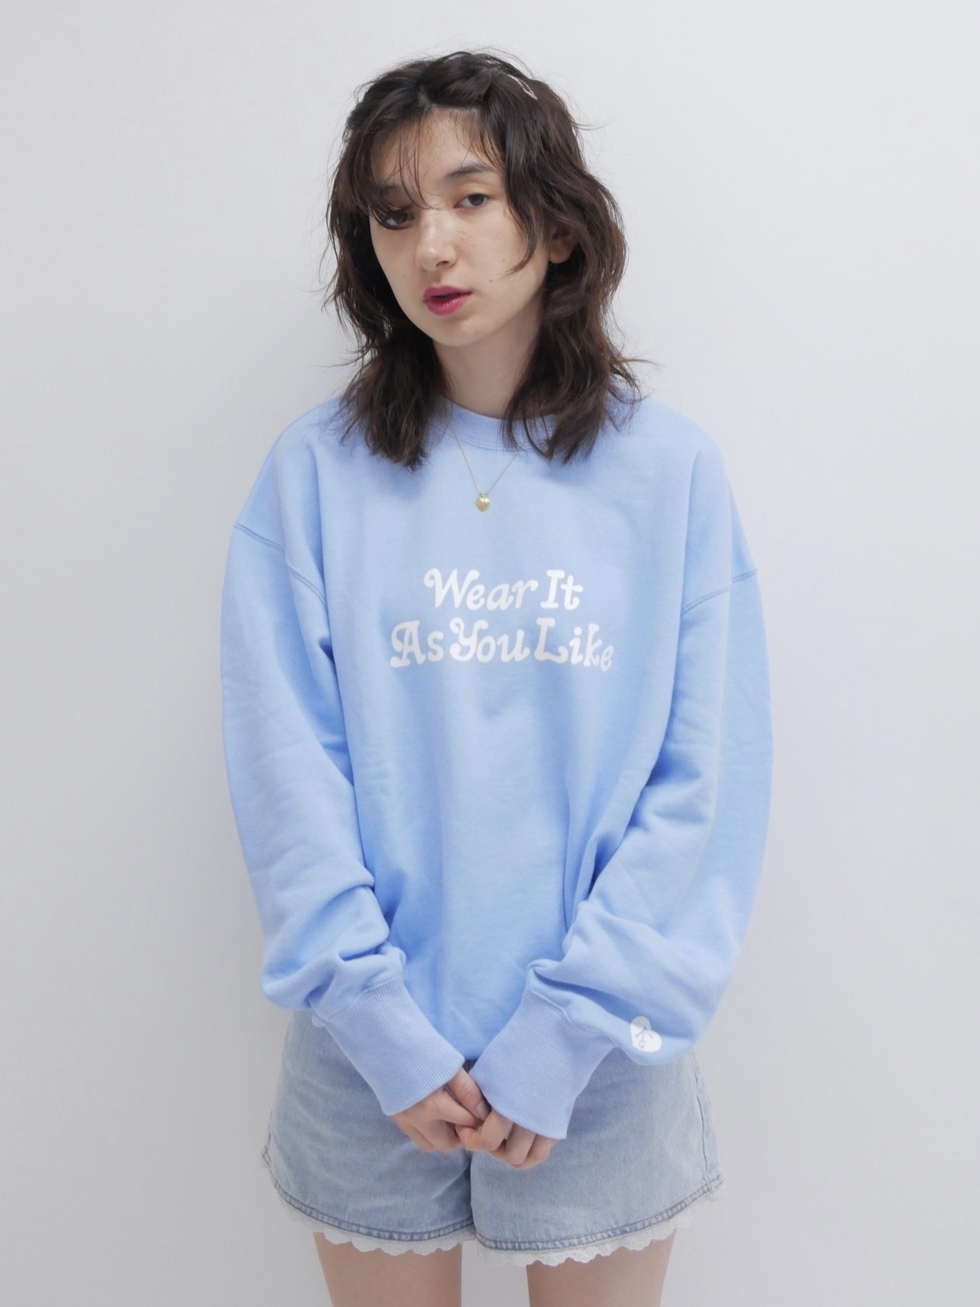 【KissMeLove】Light Blue KissMeLove sweat